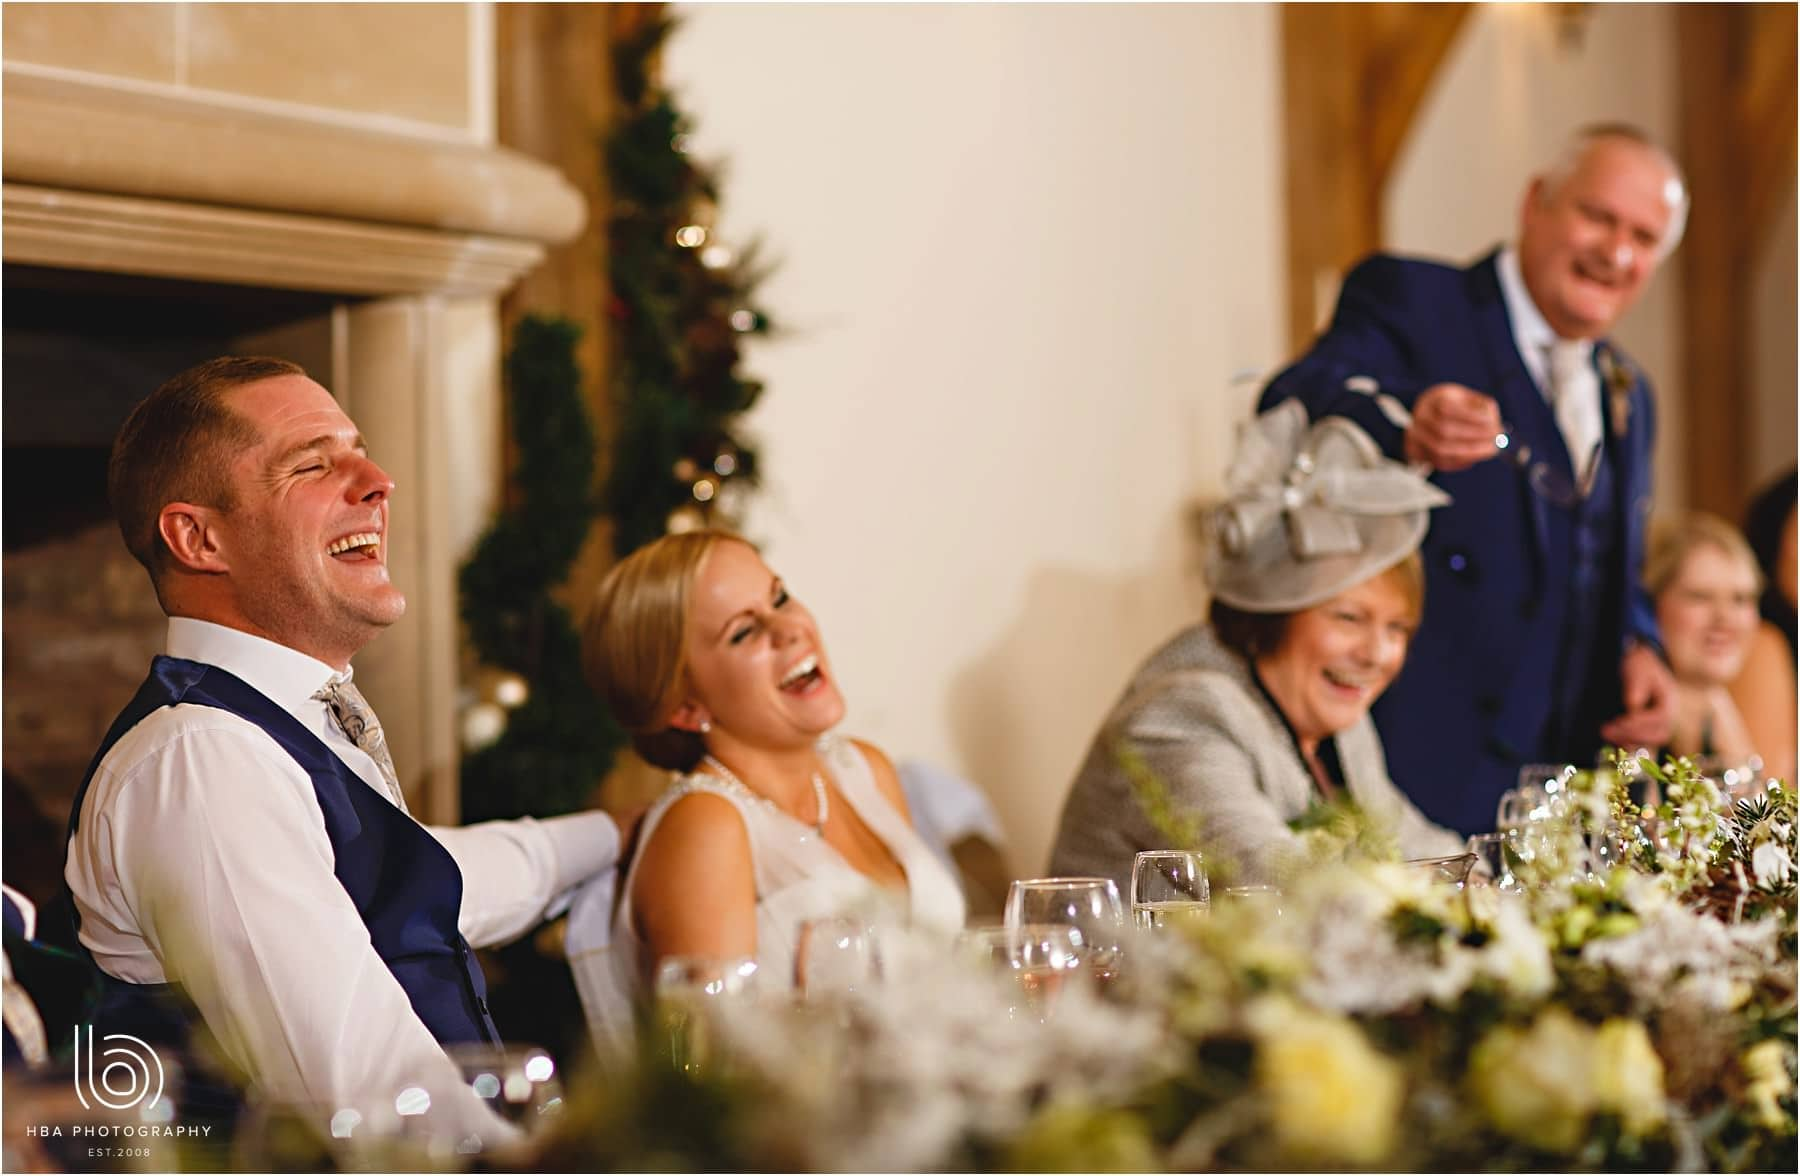 The bride and groom laughing at dads speech